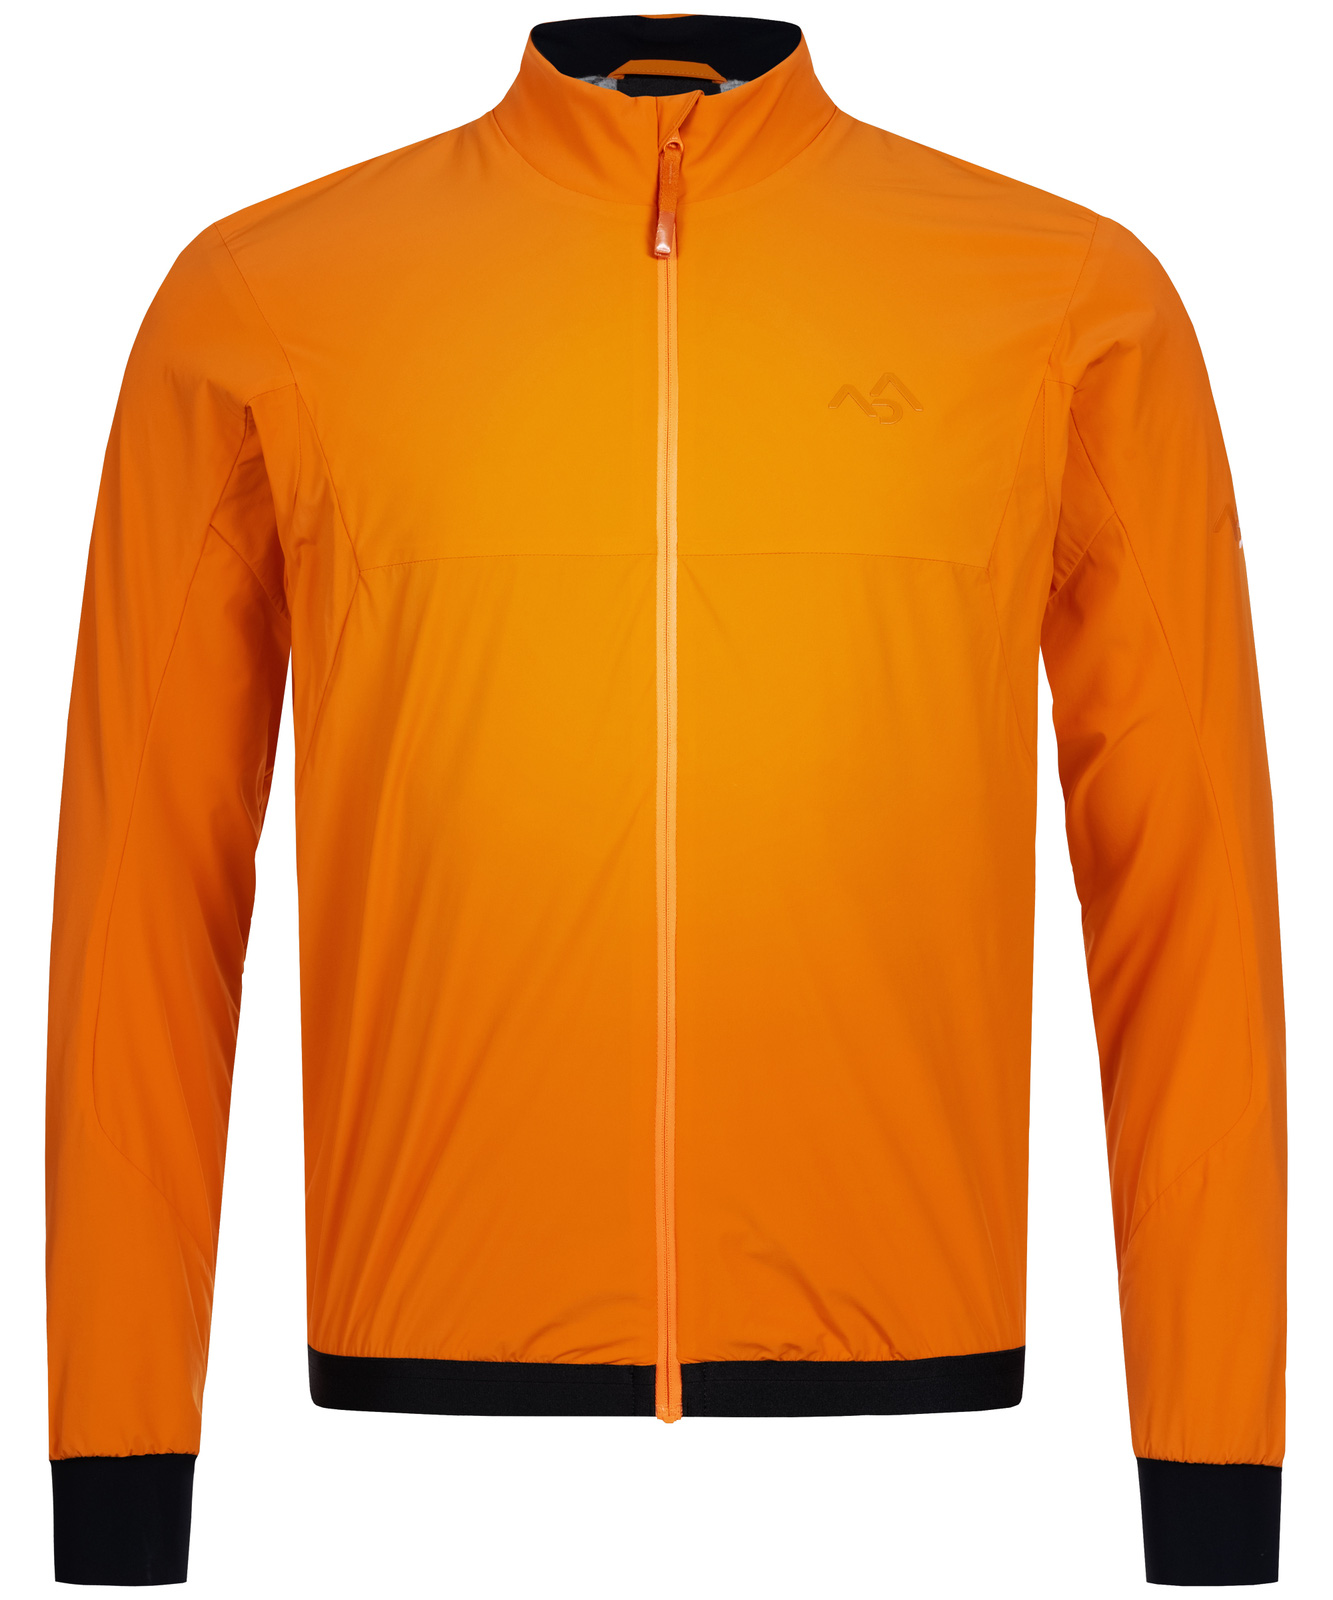 MX10 Insulation Speed Jacket